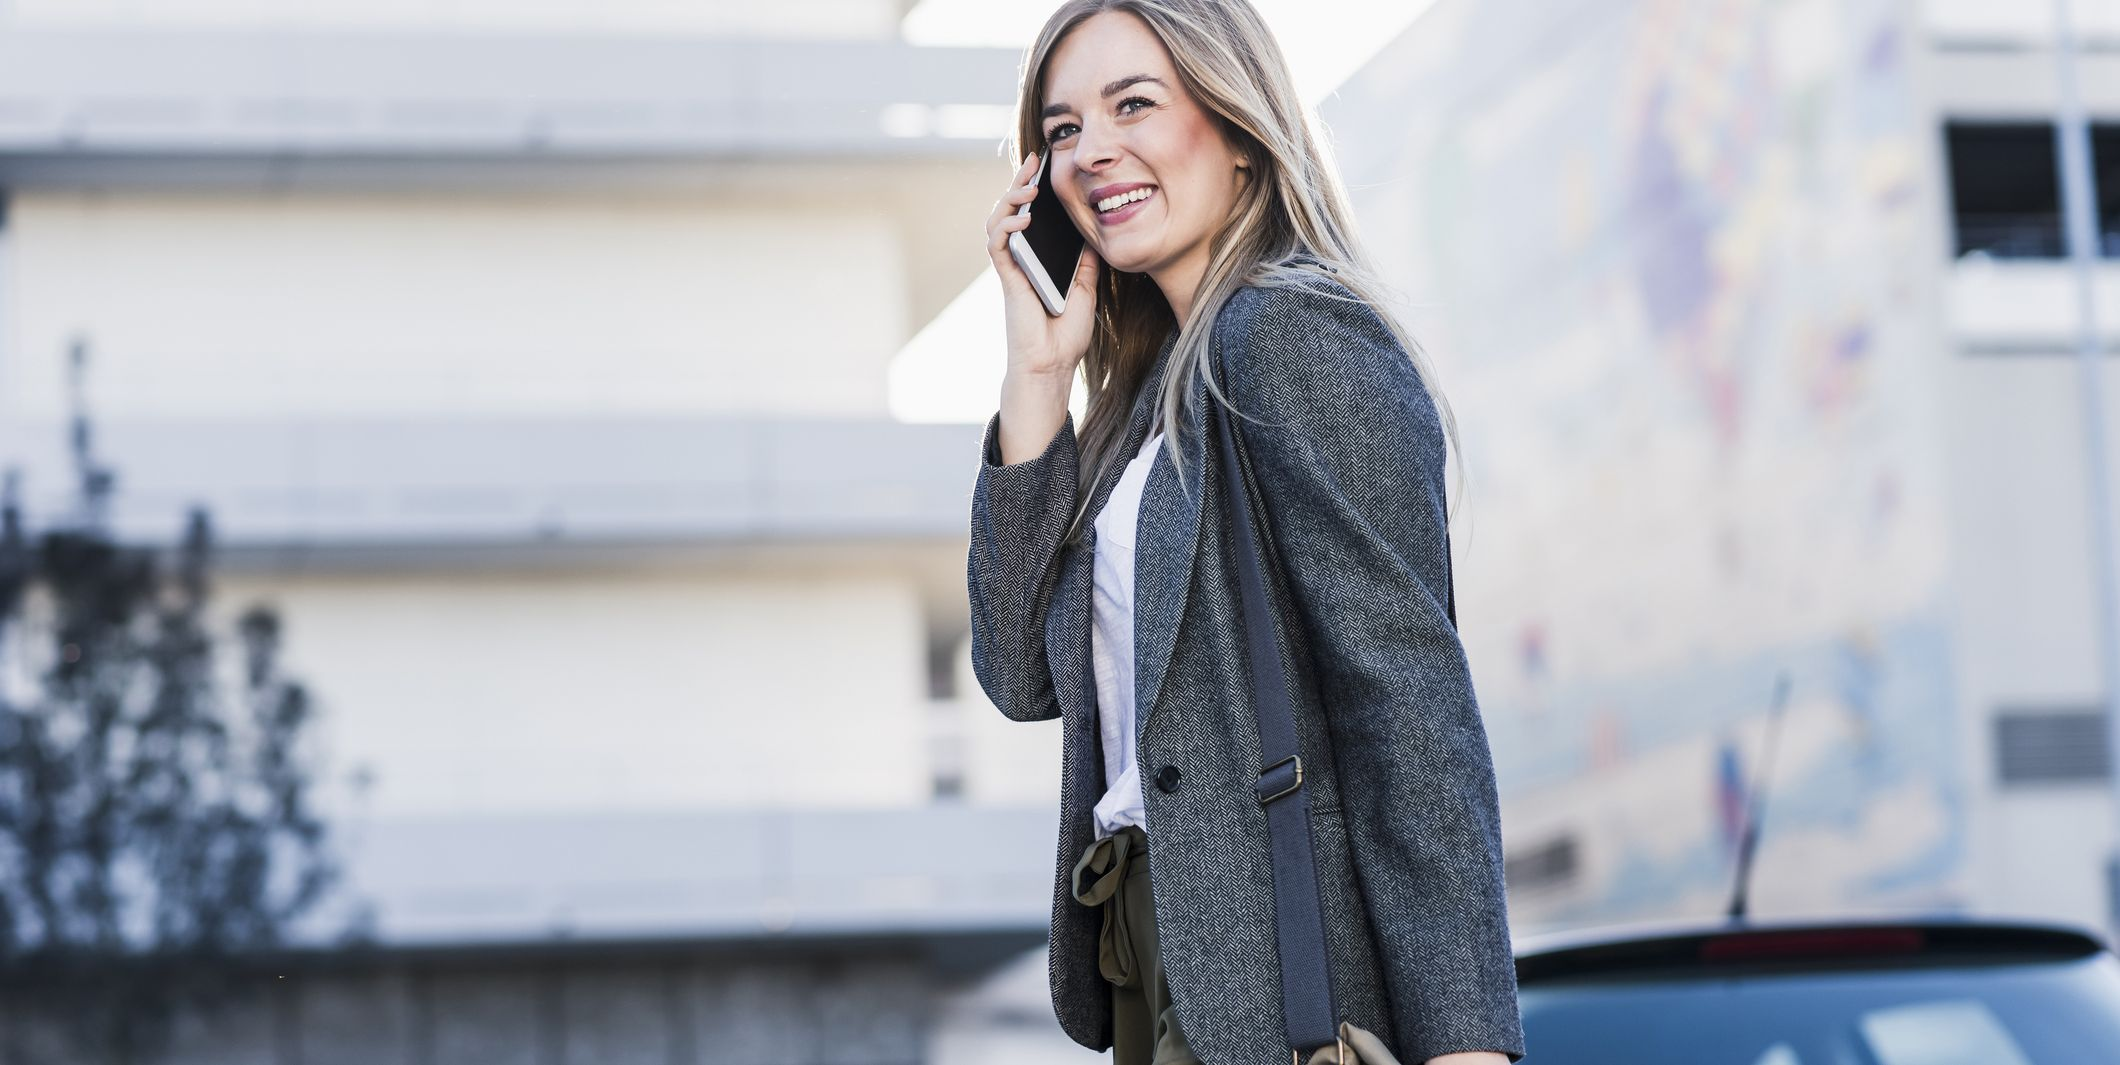 Happy young woman on cell phone in the city